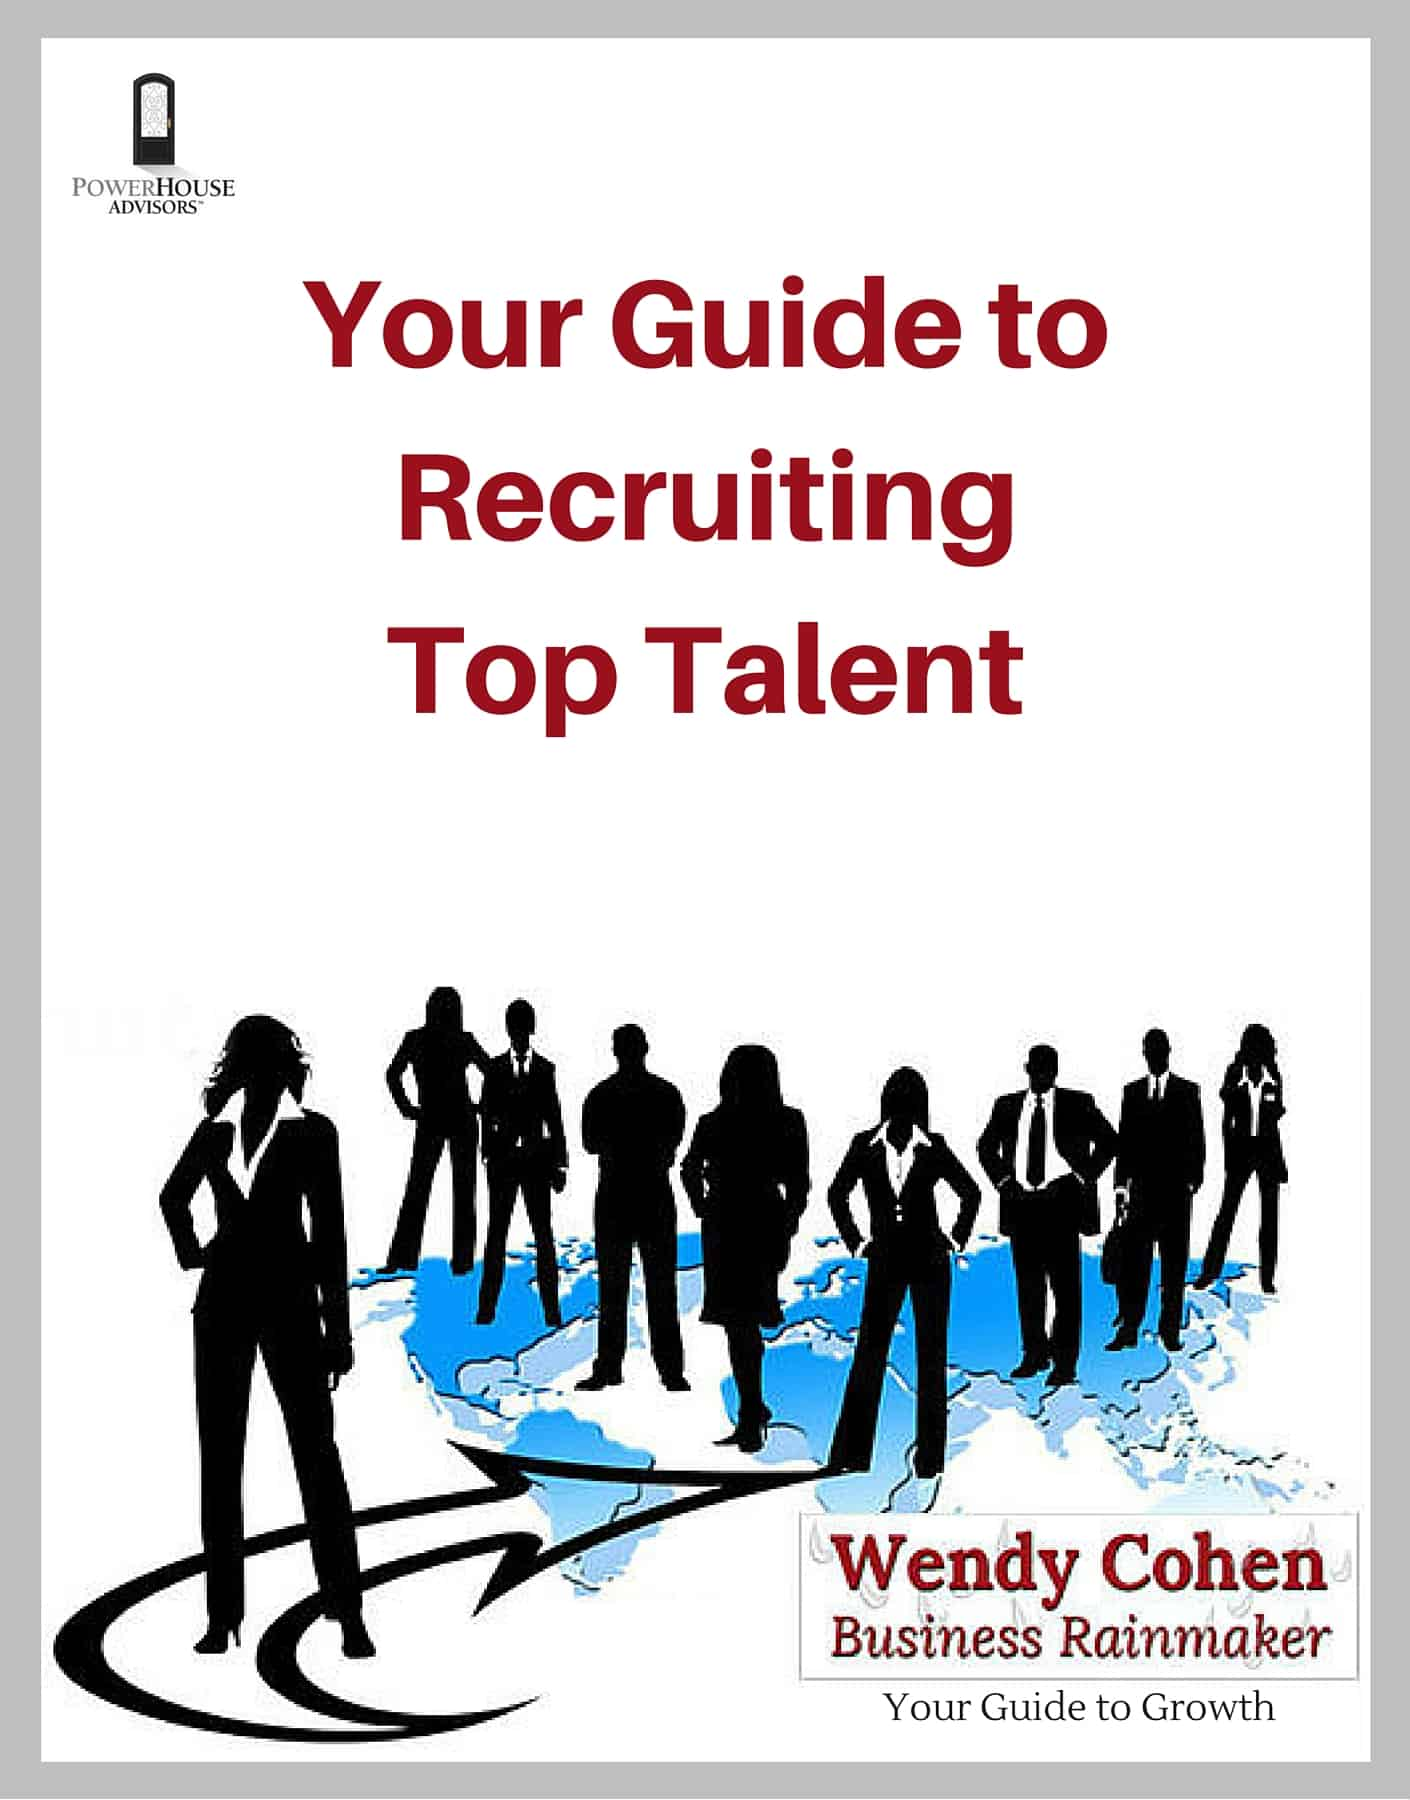 How to Recruit Top Talent Guide